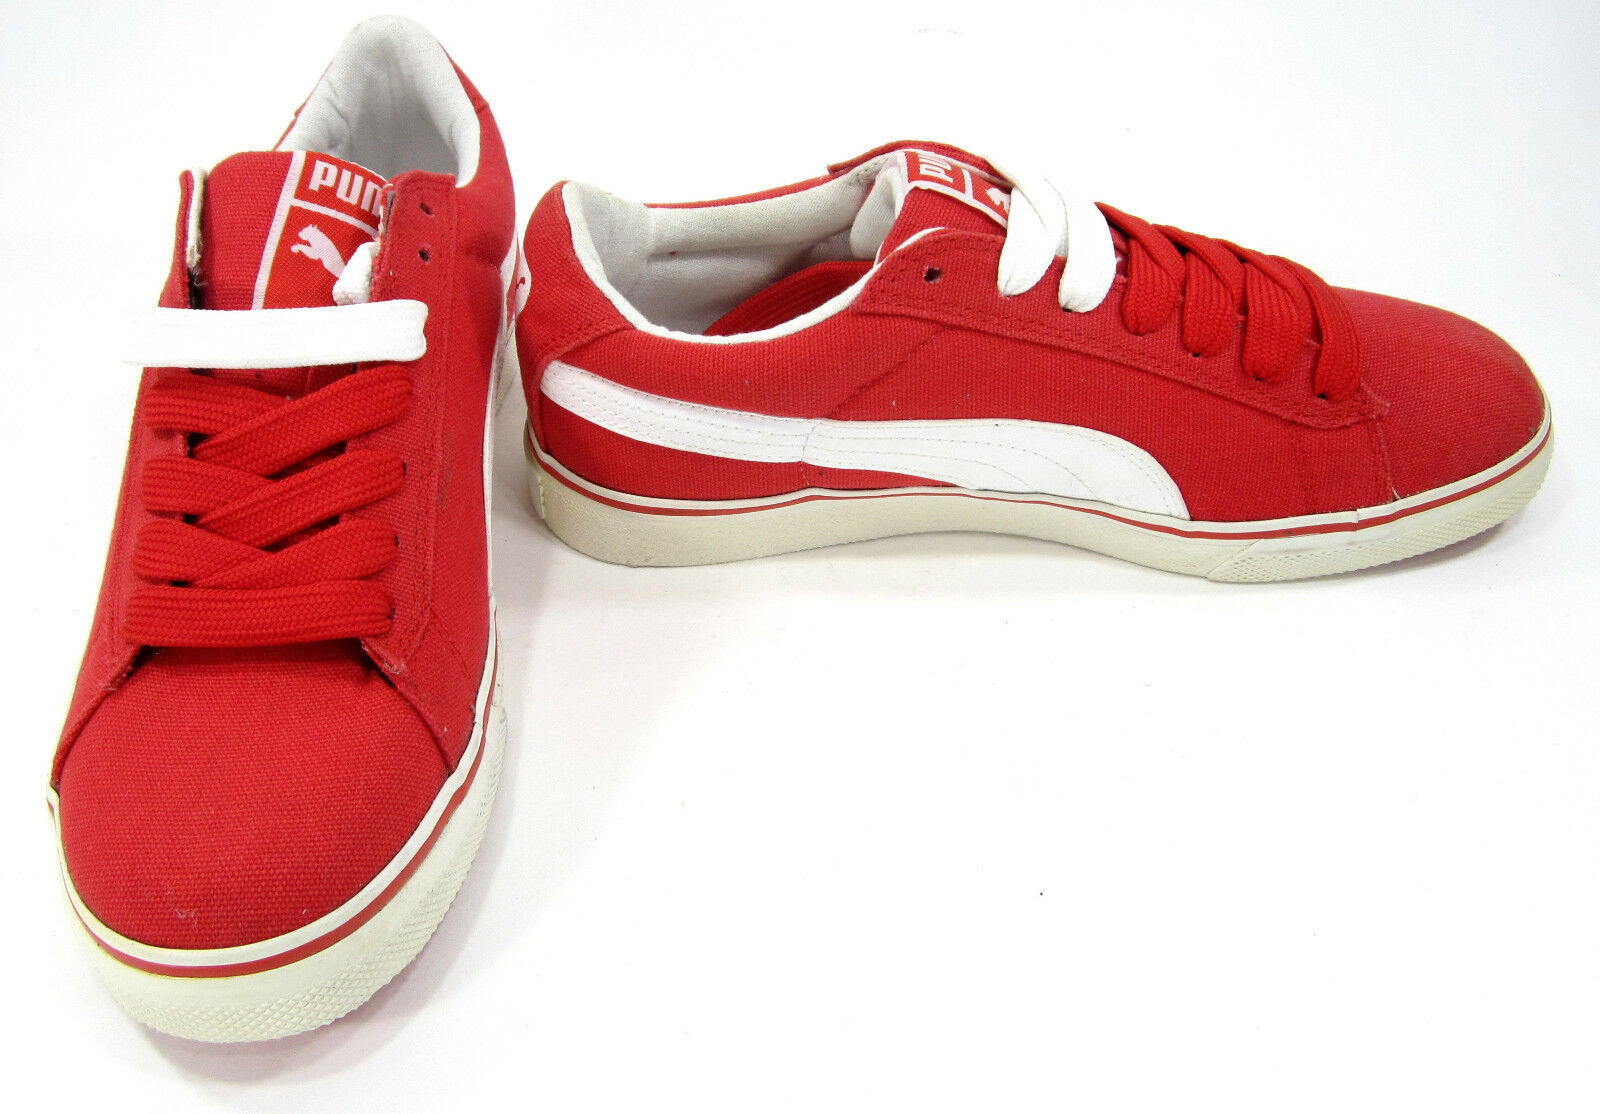 Puma shoes S Vulcanized Canvas Red White Sneakers Size 7.5